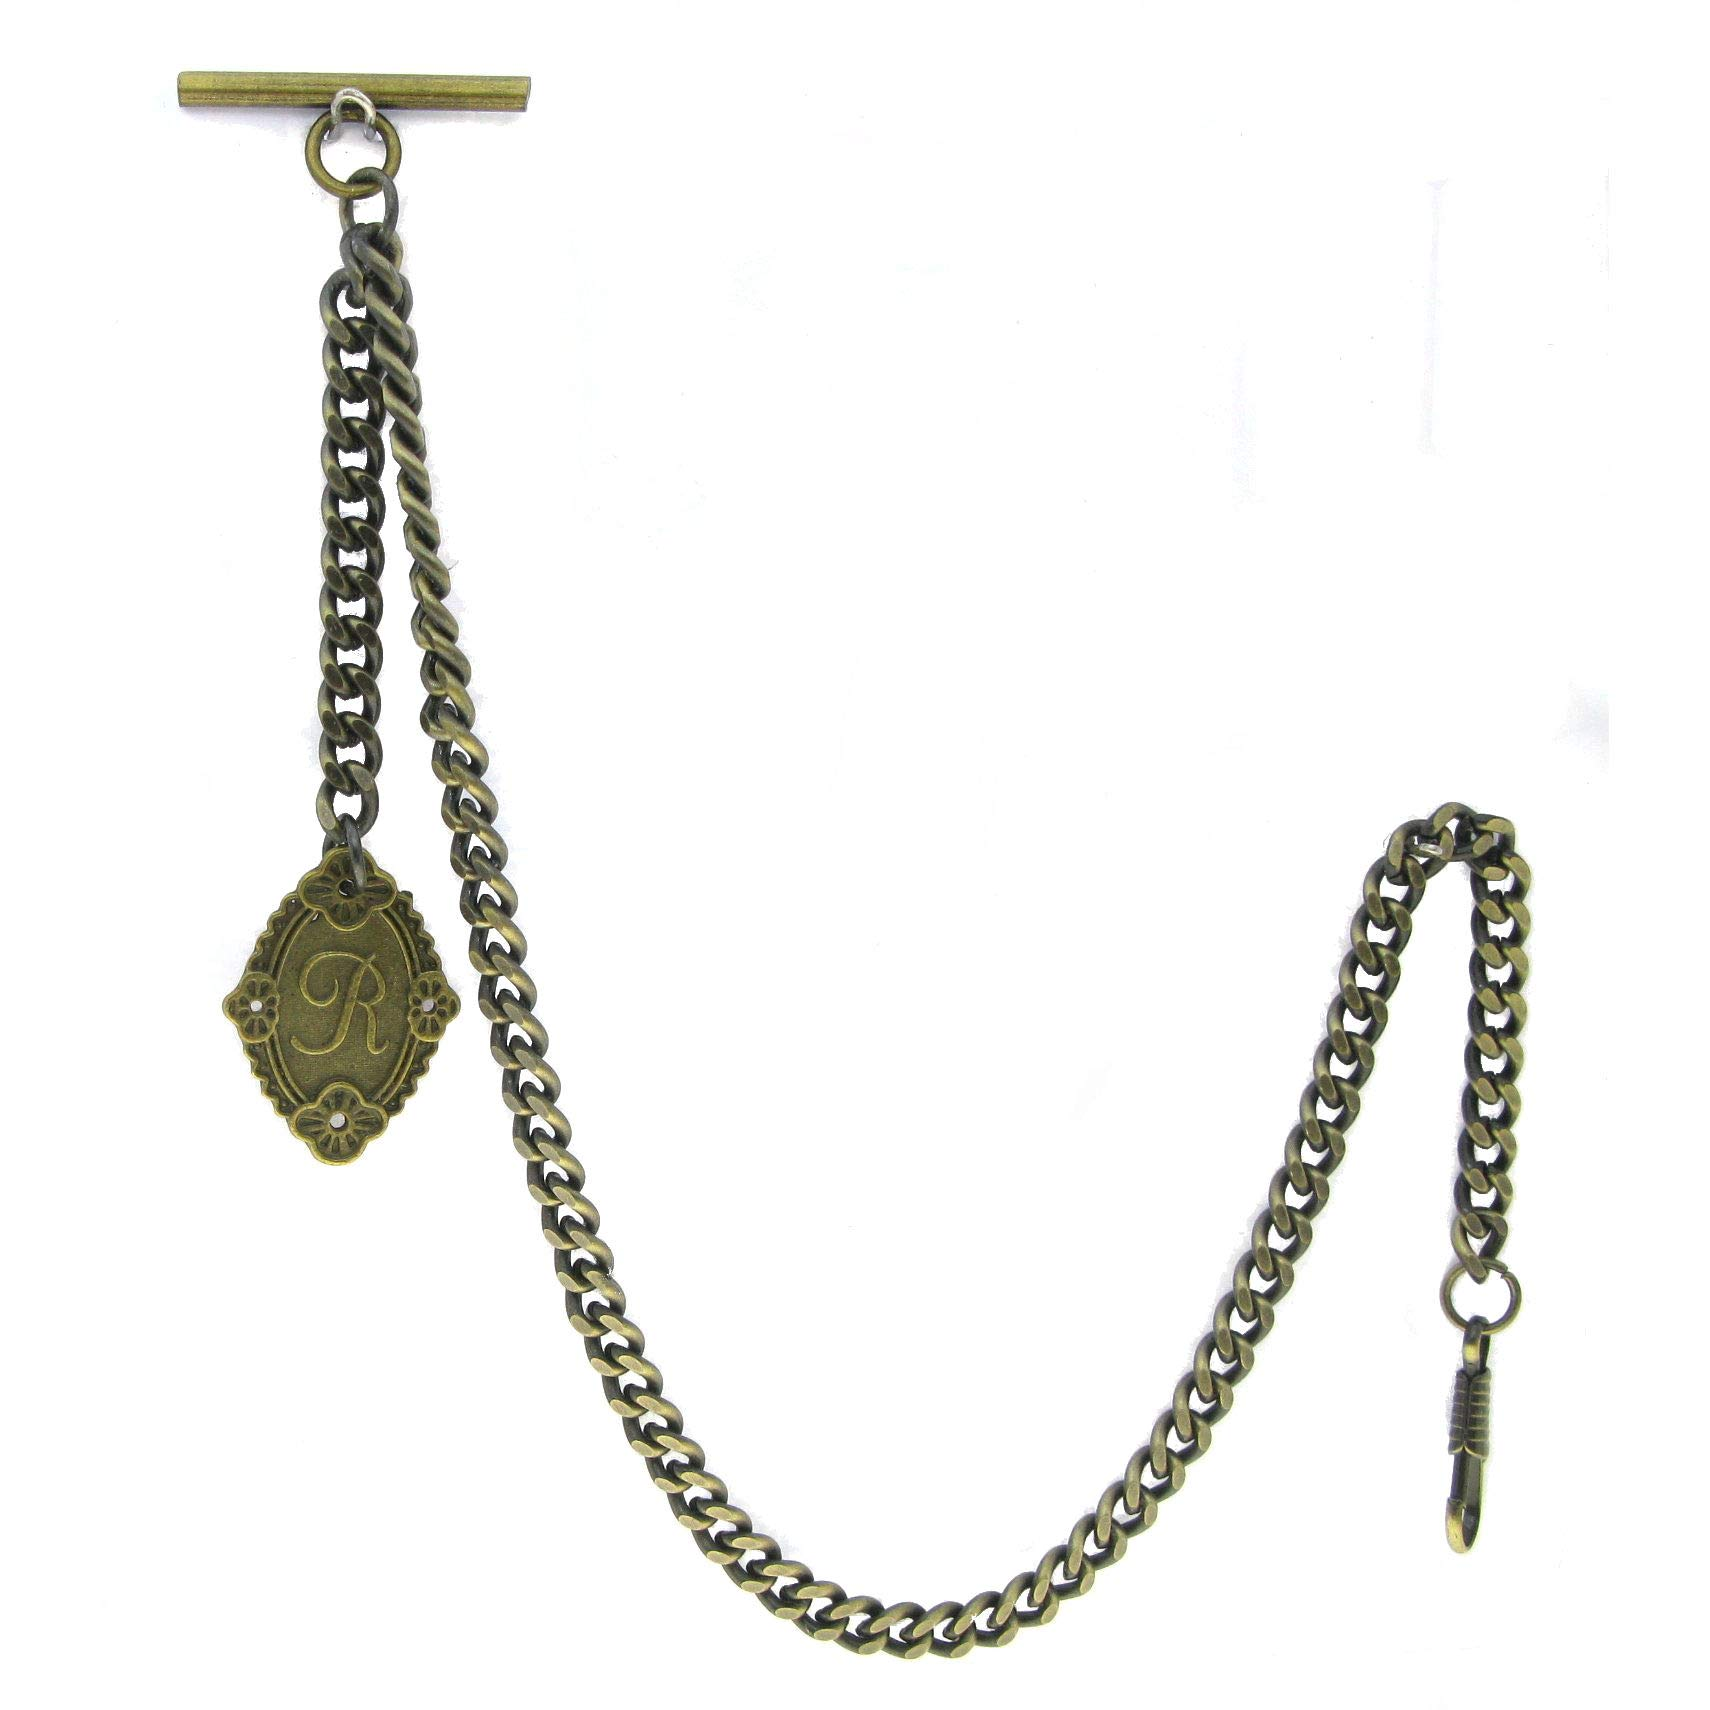 Albert Chain Pocket Watch Curb Link Chain Antique Brass Color + Alphabet R Initial Letter Fob T Bar AC90